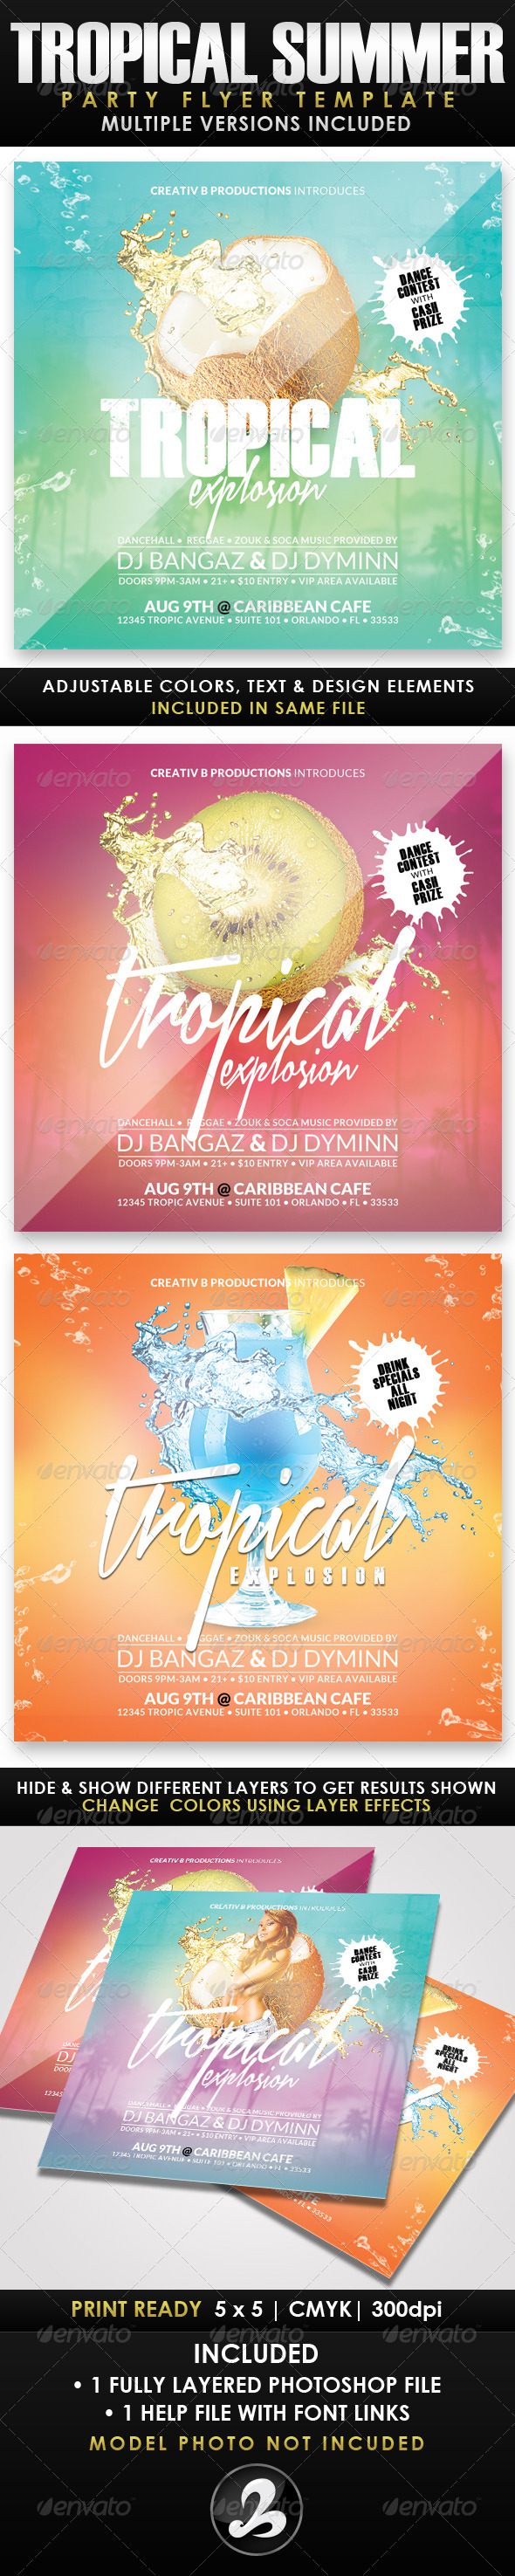 GraphicRiver Tropical Summer Party Flyer Template 2 8436955